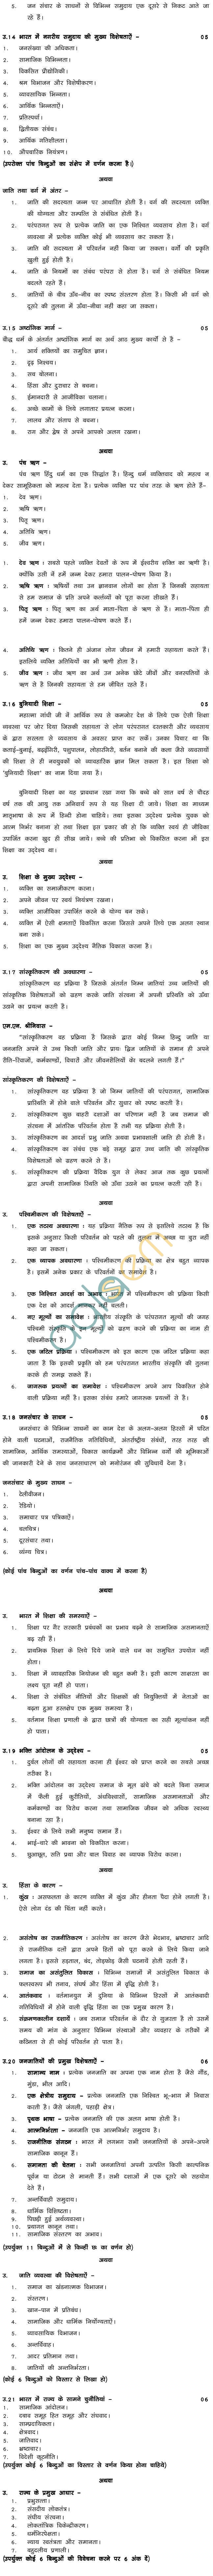 MP Board Class XII Sociology Model Questions & Answers - Set 3